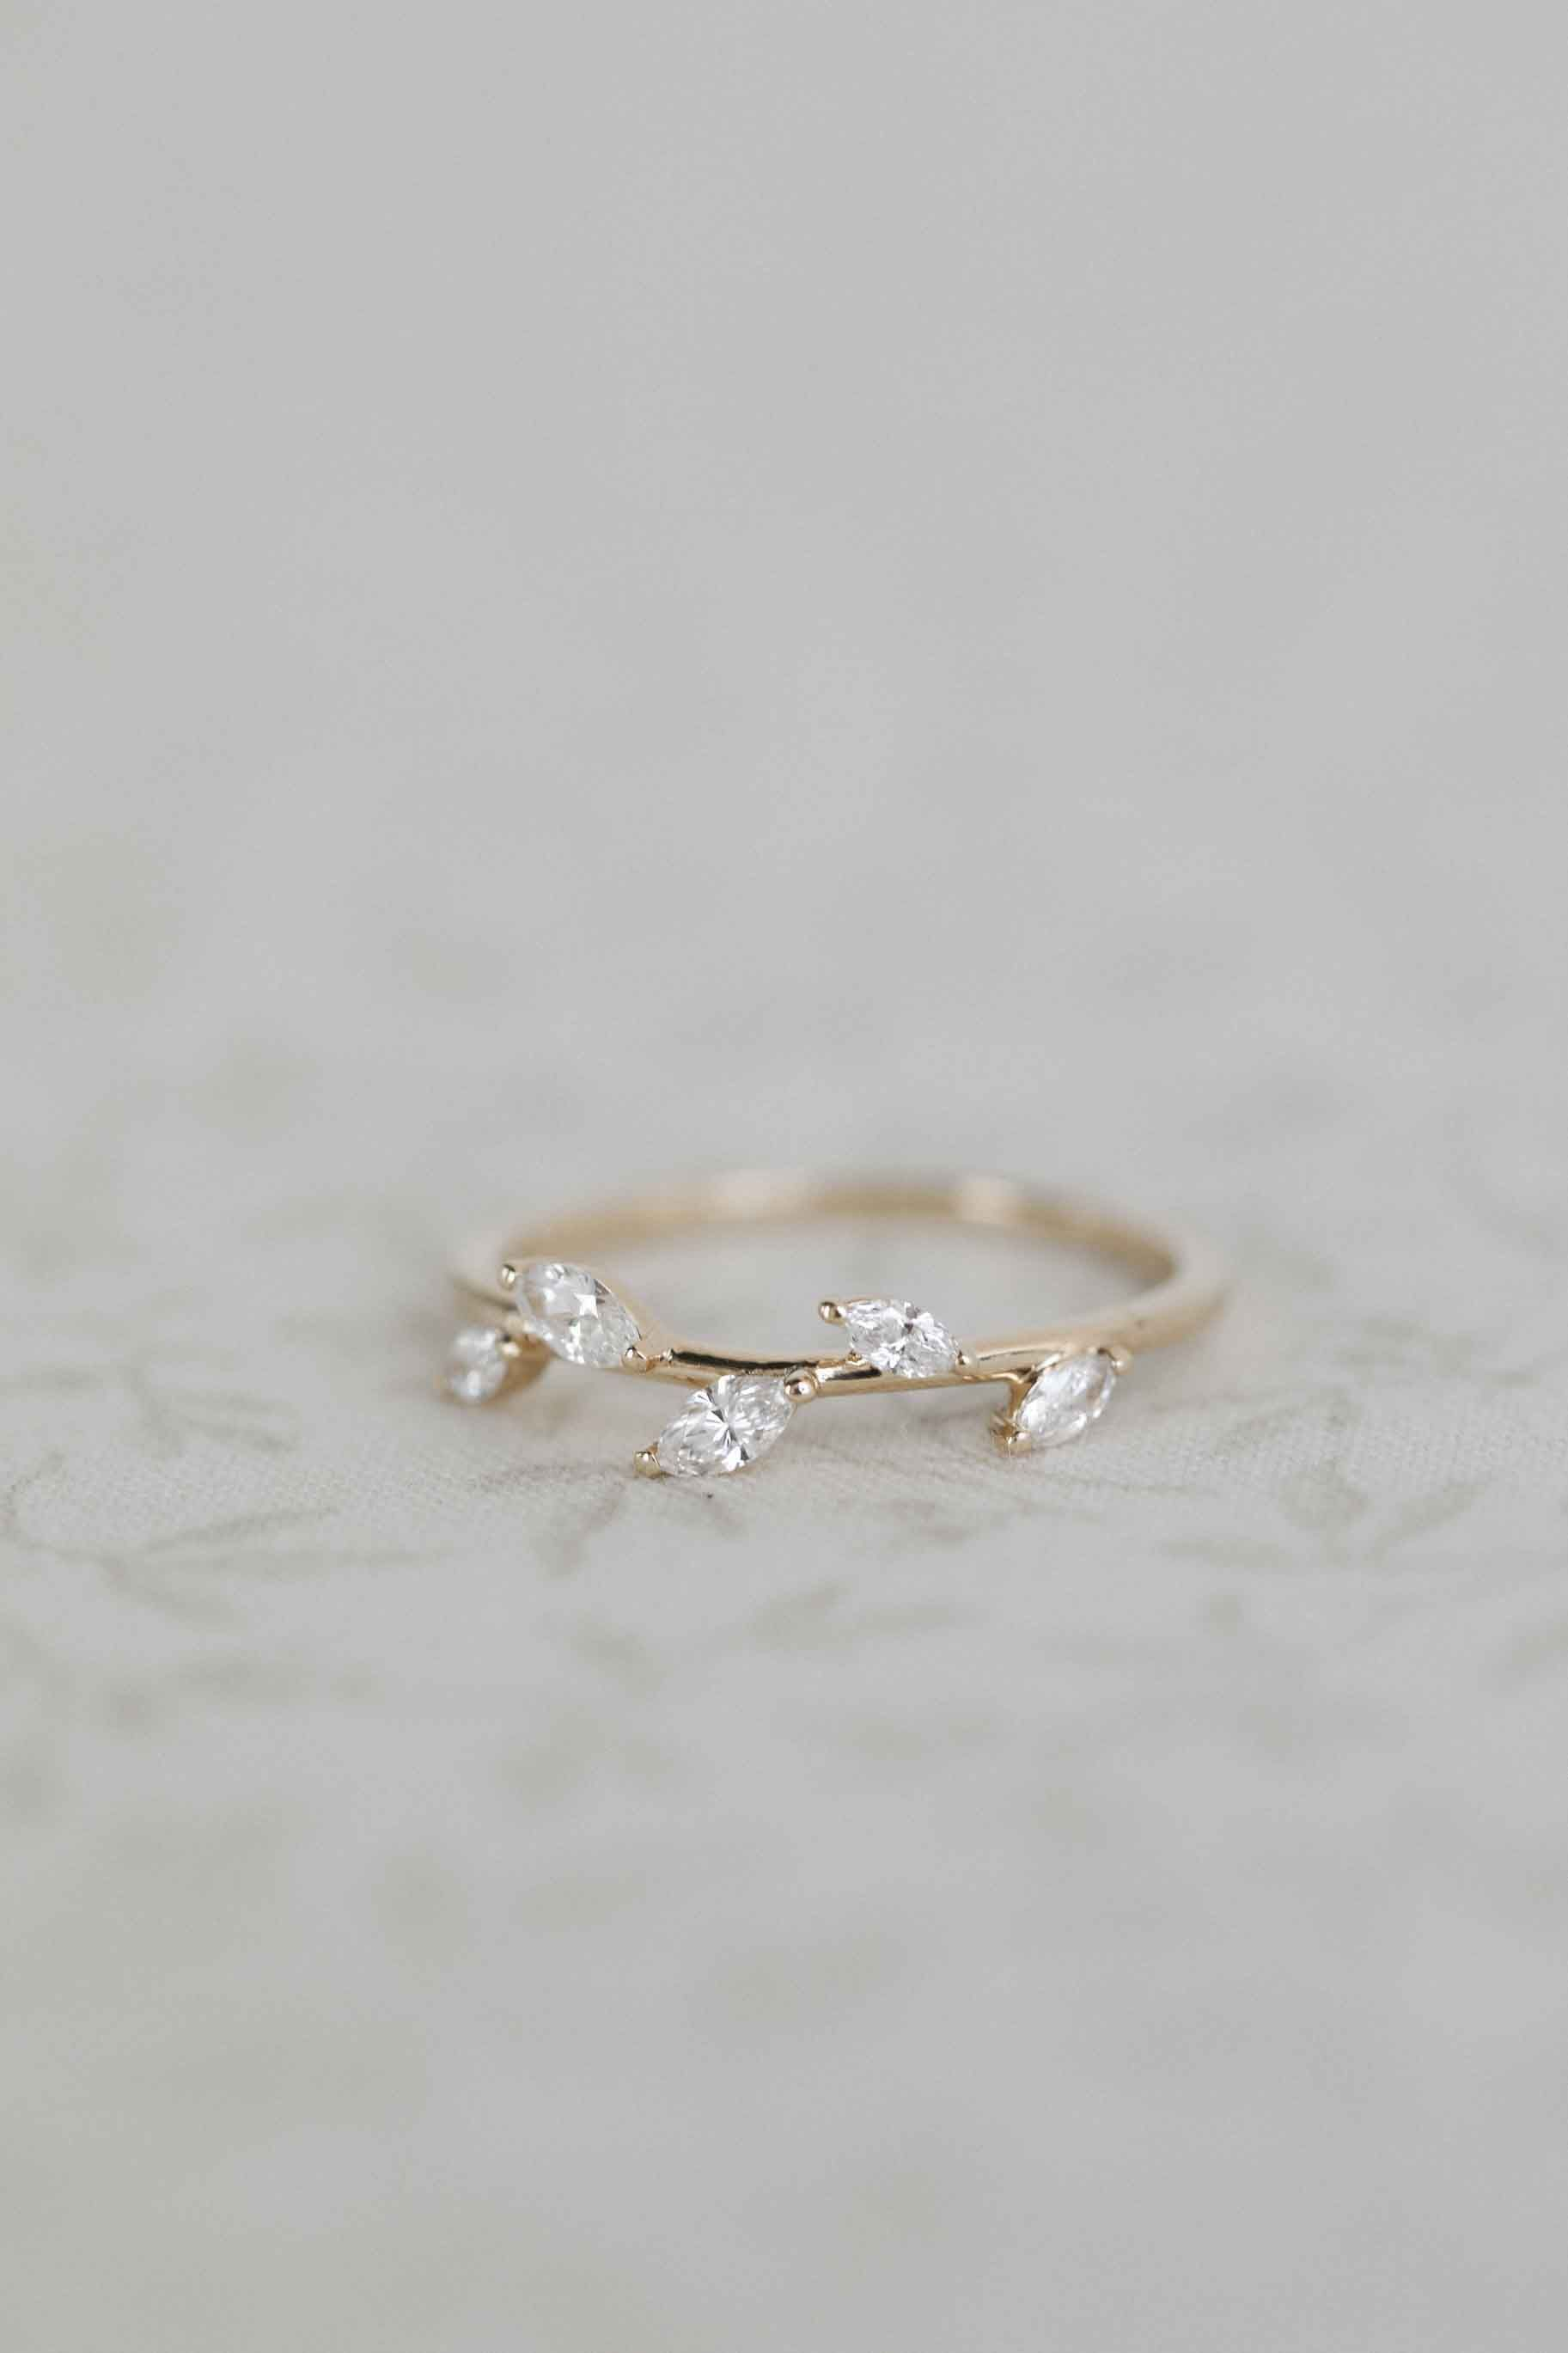 Branch In 2020 Yellow Gold Engagement Rings Engraved Items Wedding Bands For Her